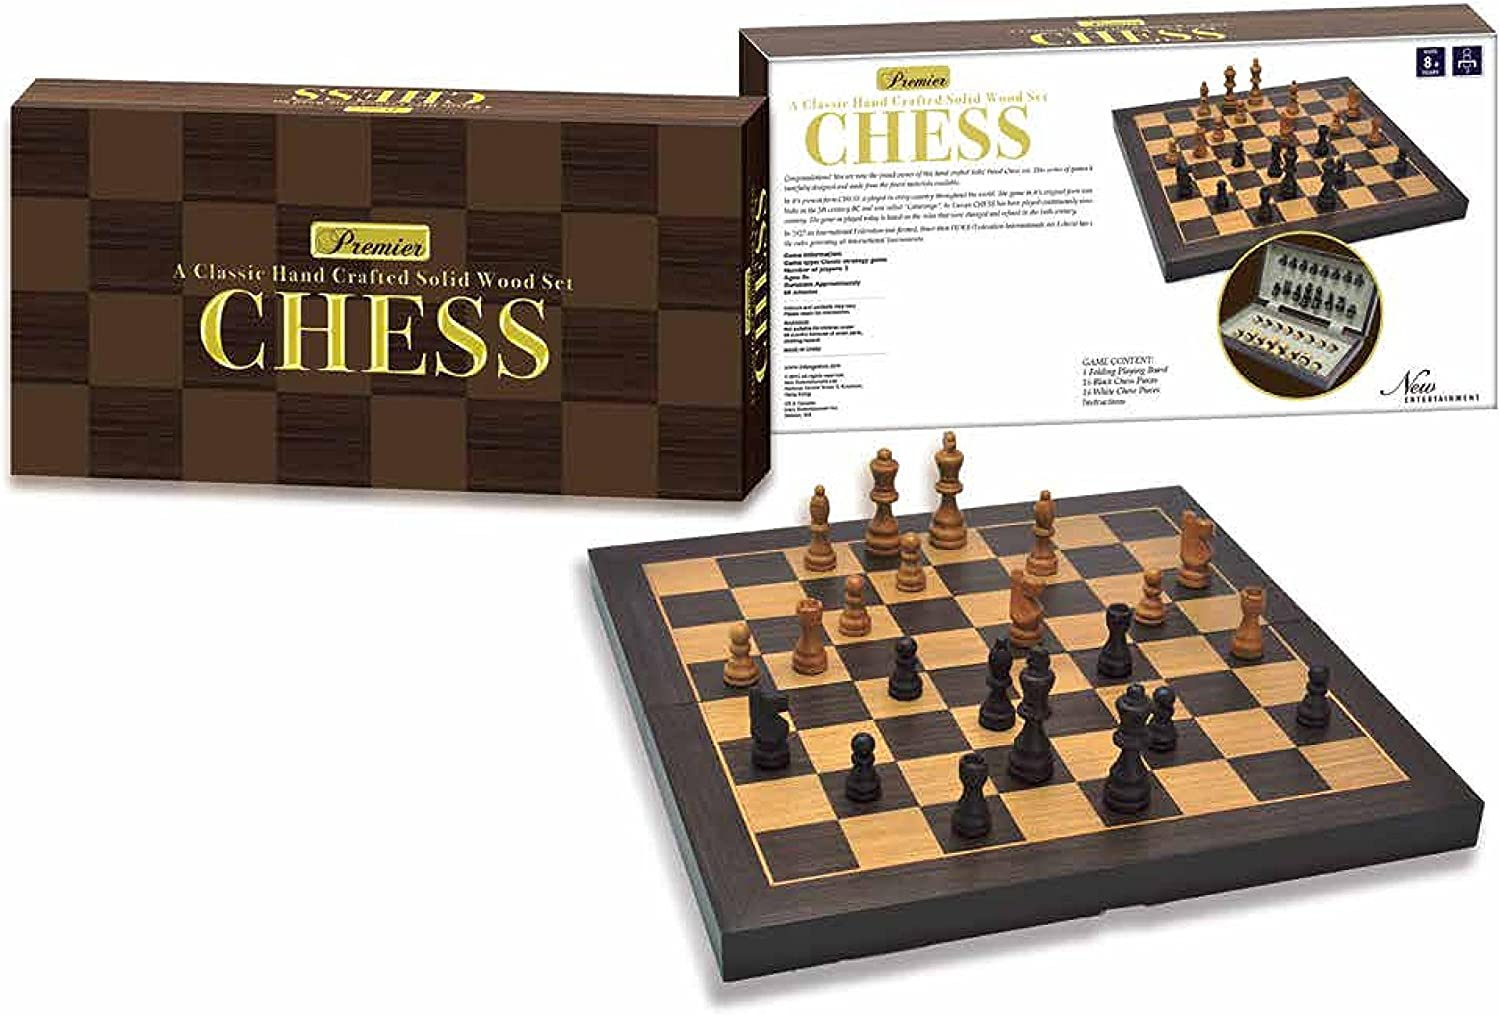 New Entertainment Premier Chess Board Game